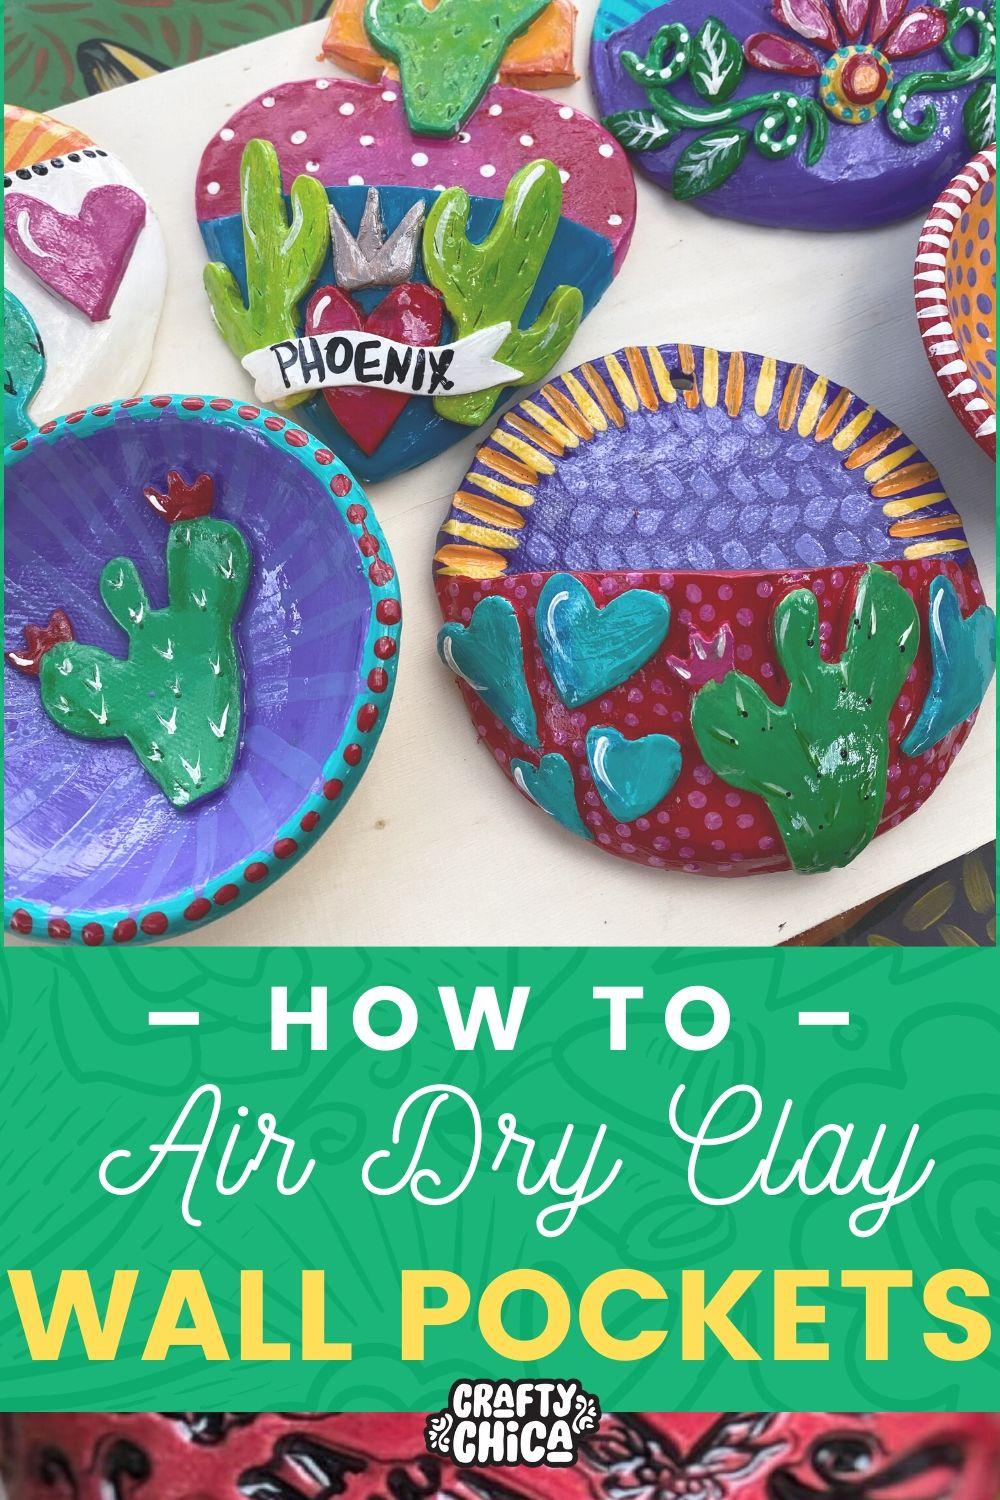 Air dry clay - let's make wall pockets! #craftychca #airdryclayideas